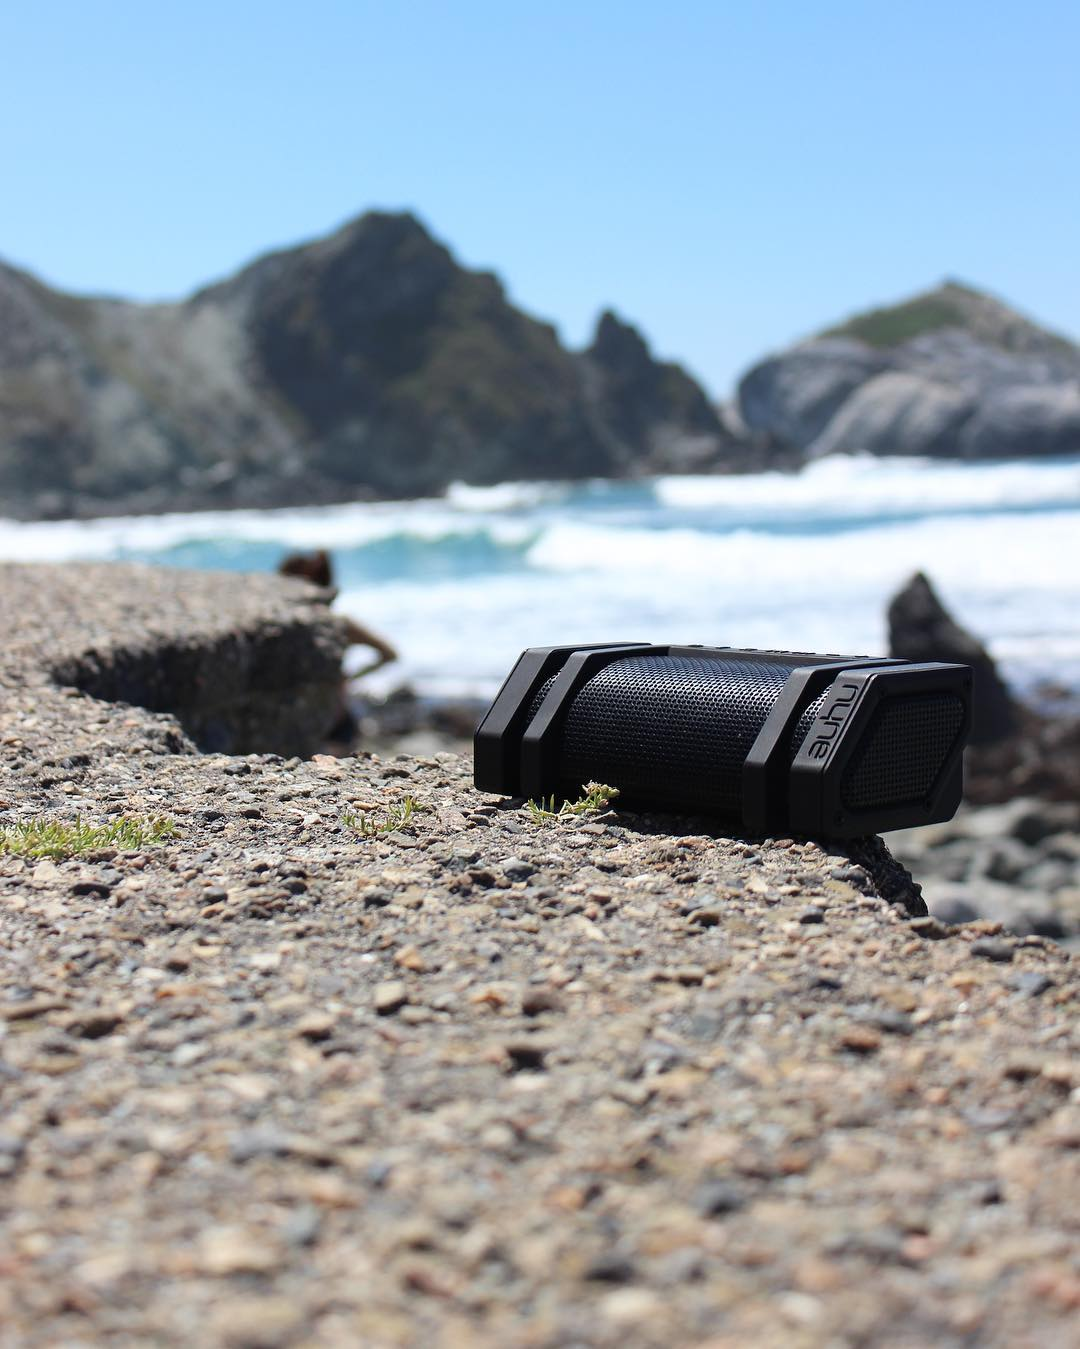 Life on the edge. #NYNEedge #rugged #bluetoothspeaker #lifesoundsgood #lifeontheedge